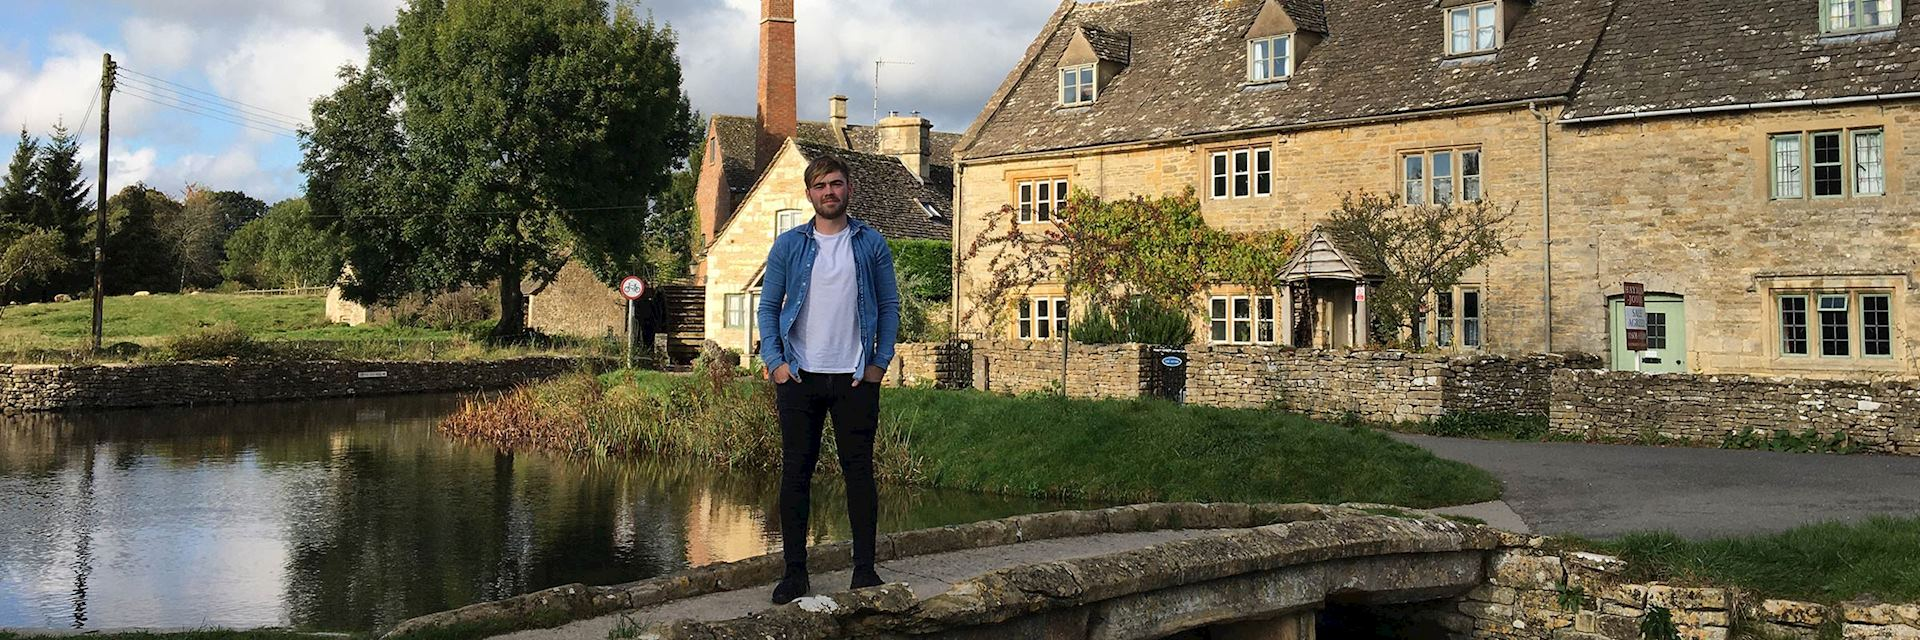 Kevin in the Cotswolds, England